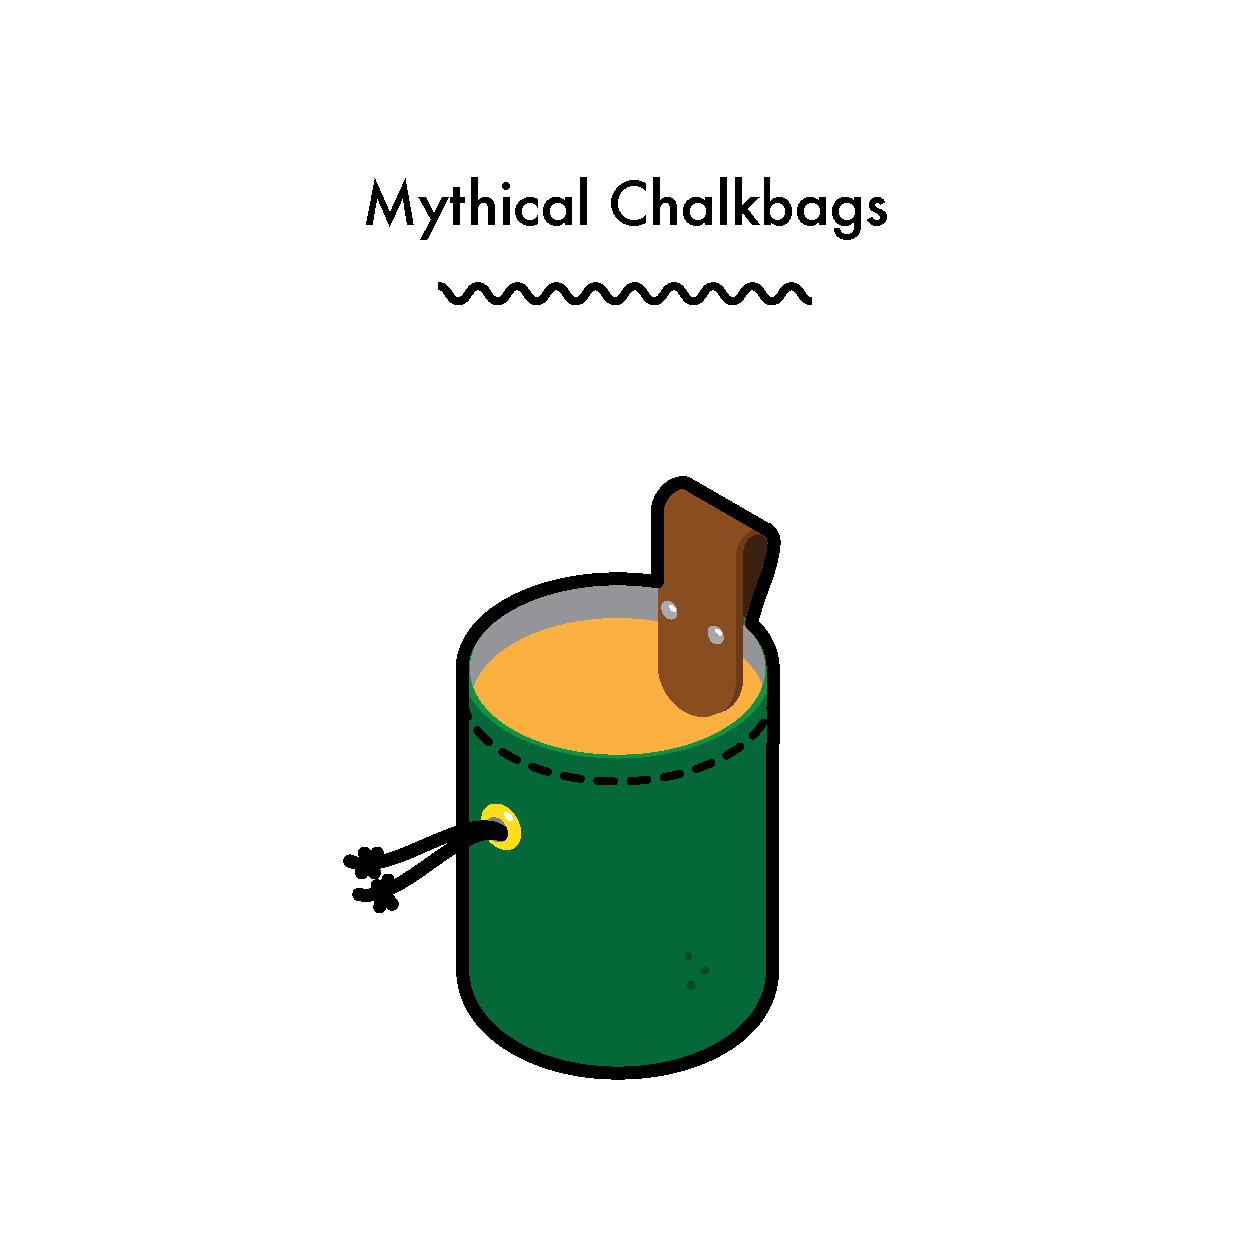 mythical chalkbags-01.png